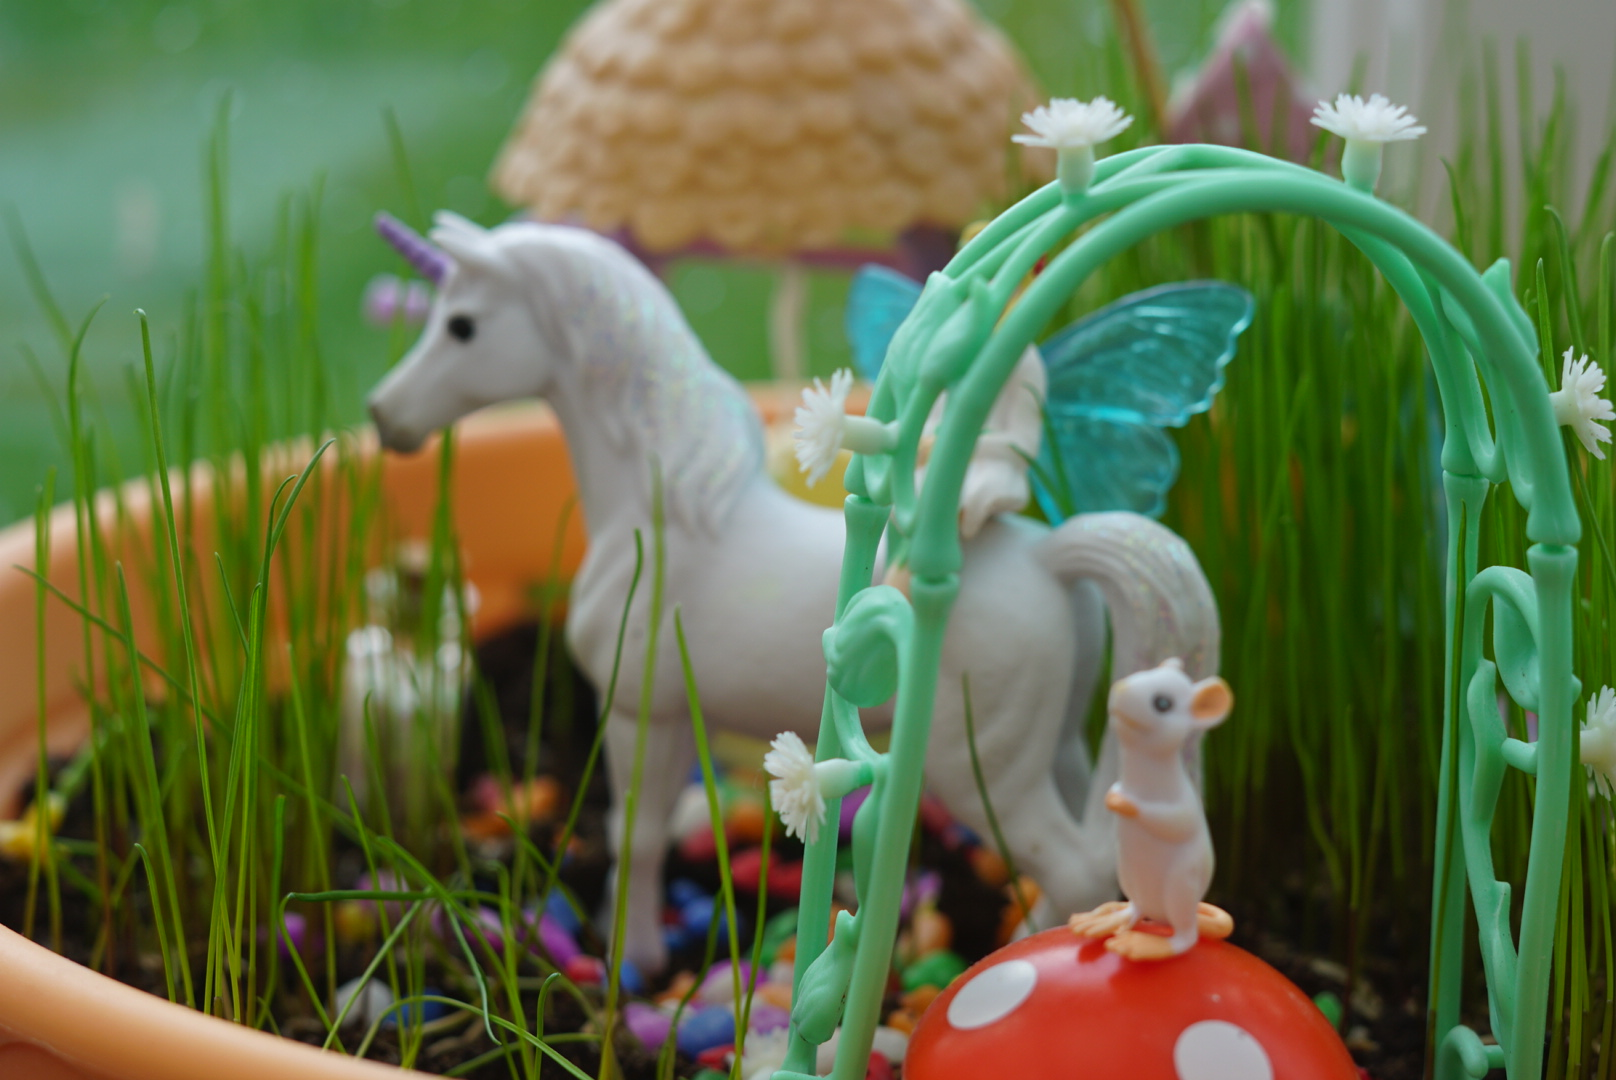 My Unicorn garden – create your own garden #NationalUnicornDay